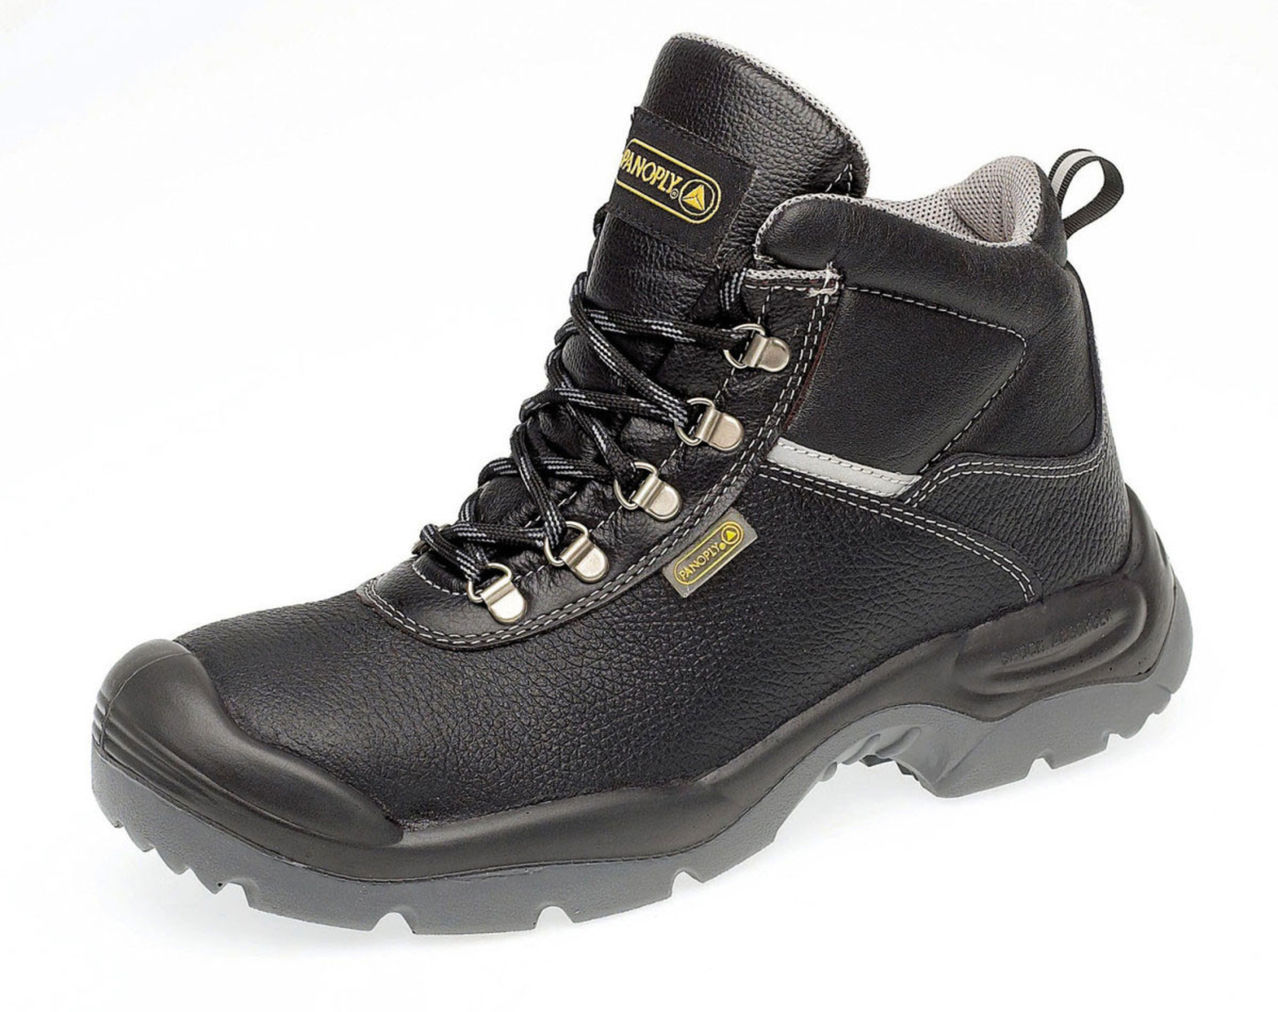 8fa6d3c362 Delta Plus Panoply SAULT S3 Safety Work Boots